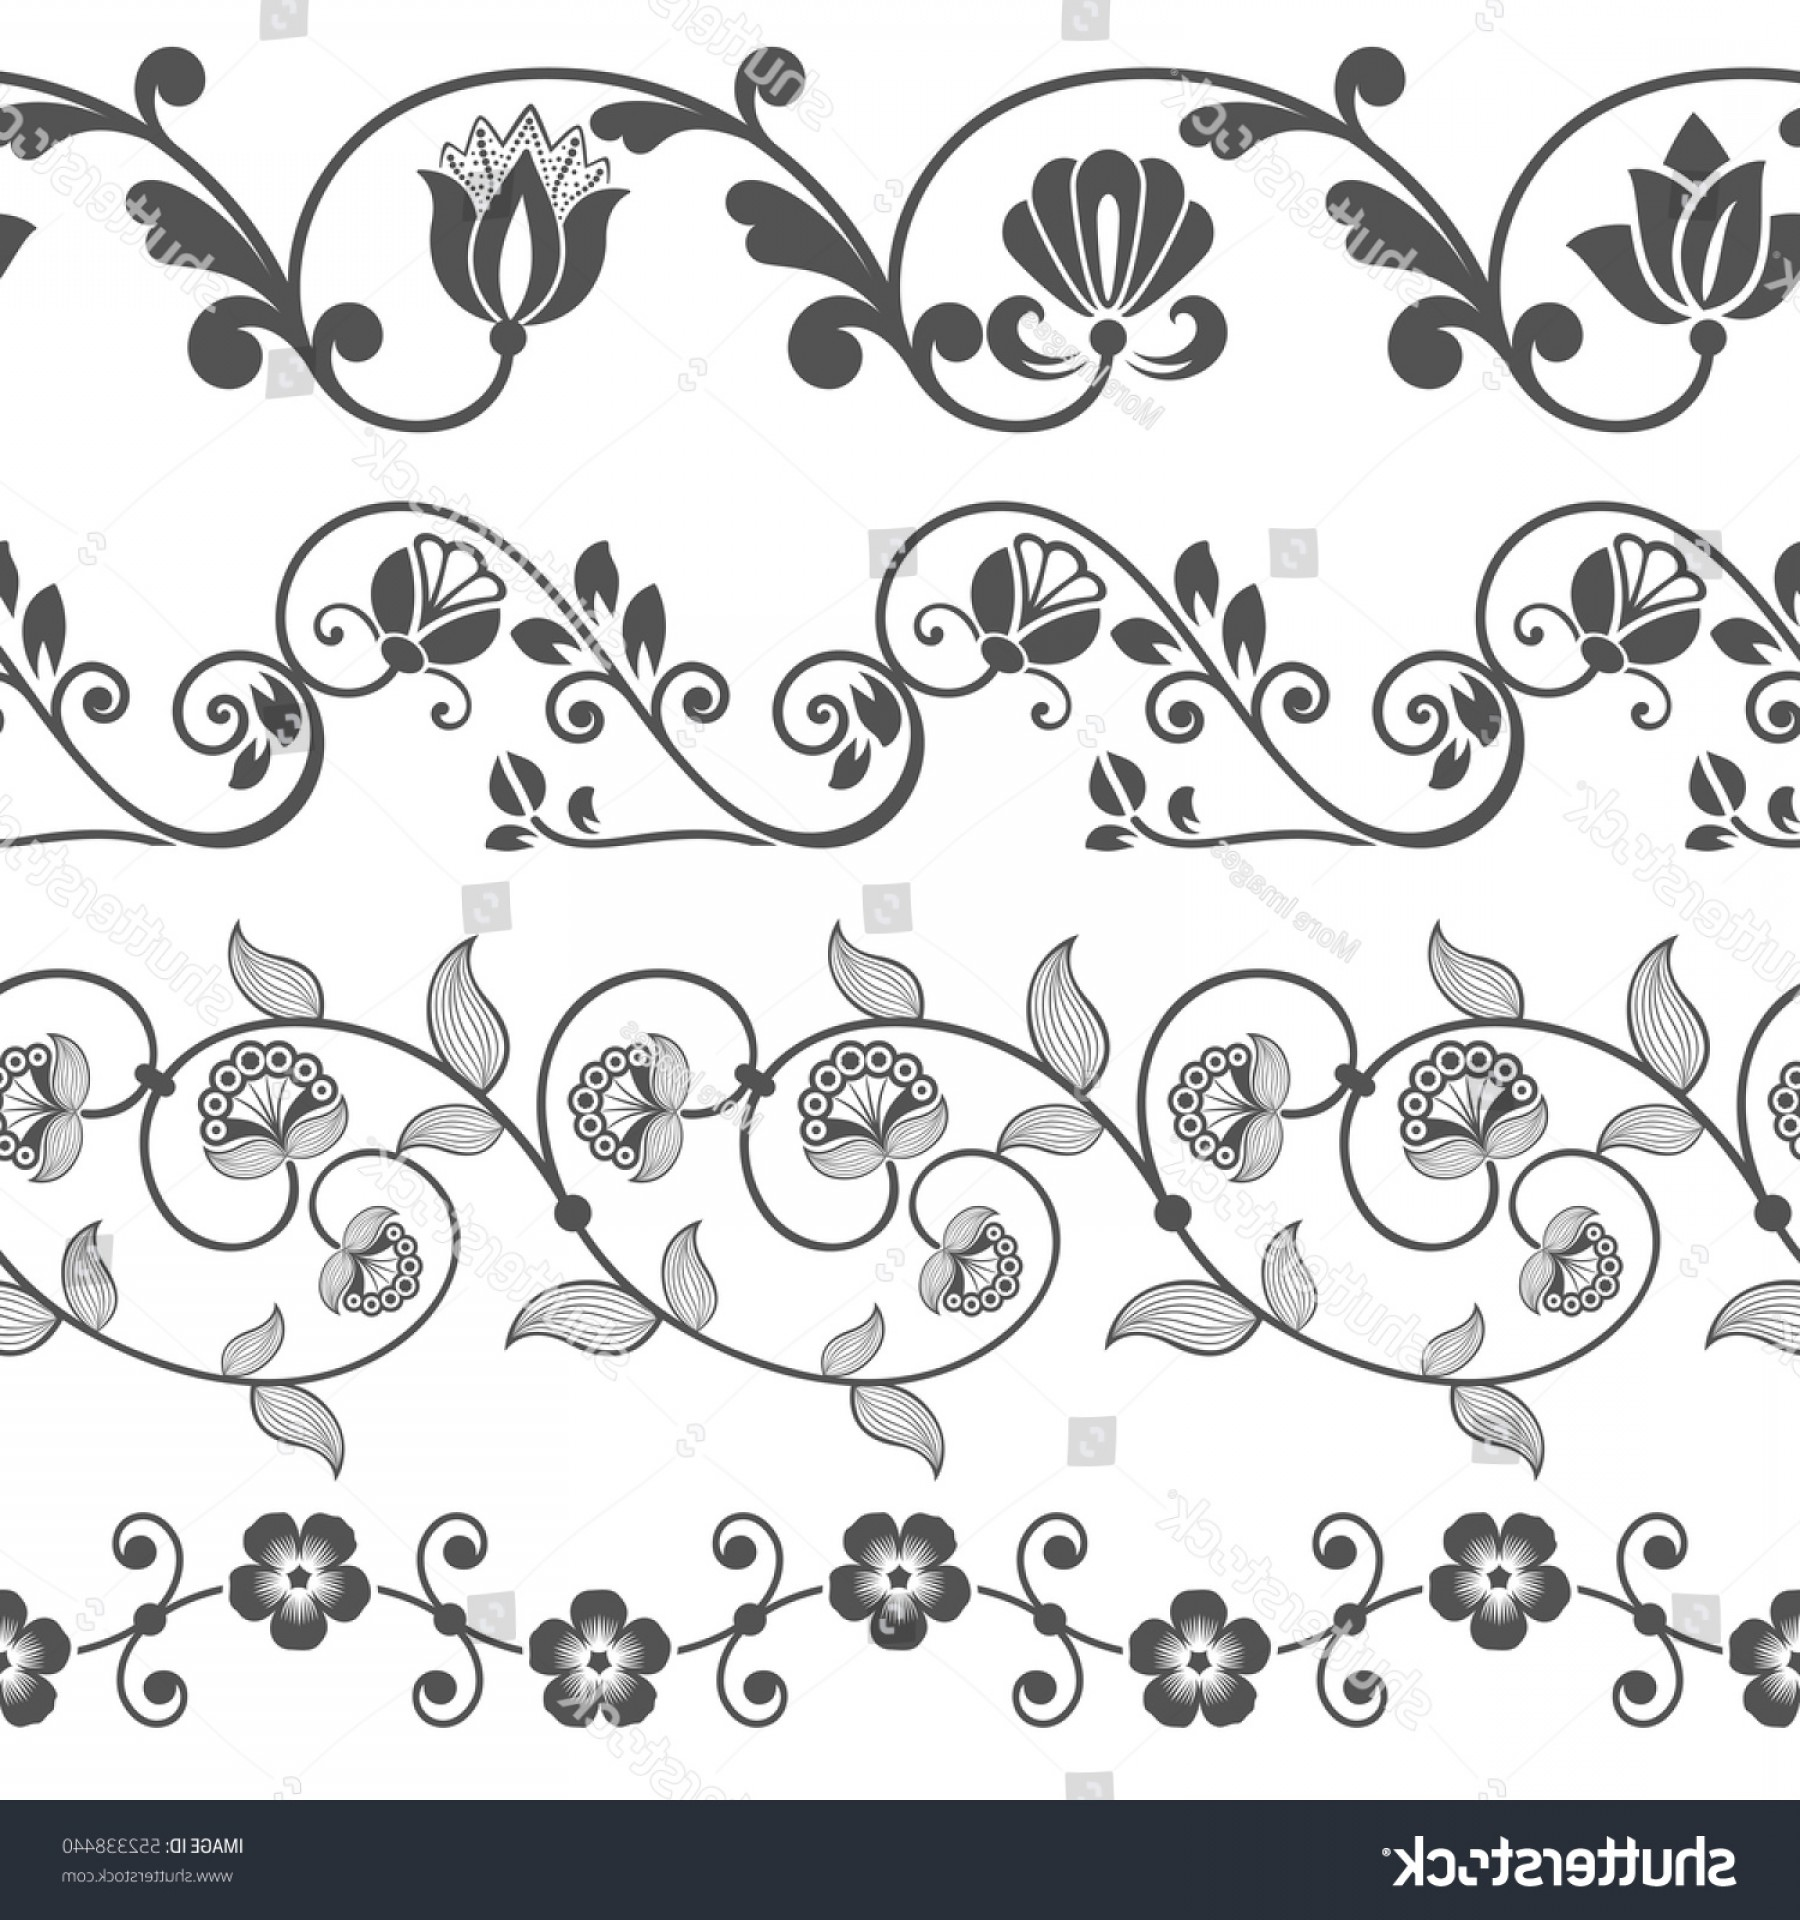 1800x1920 Seamless Floral Border Vector Template Flower Shopatcloth